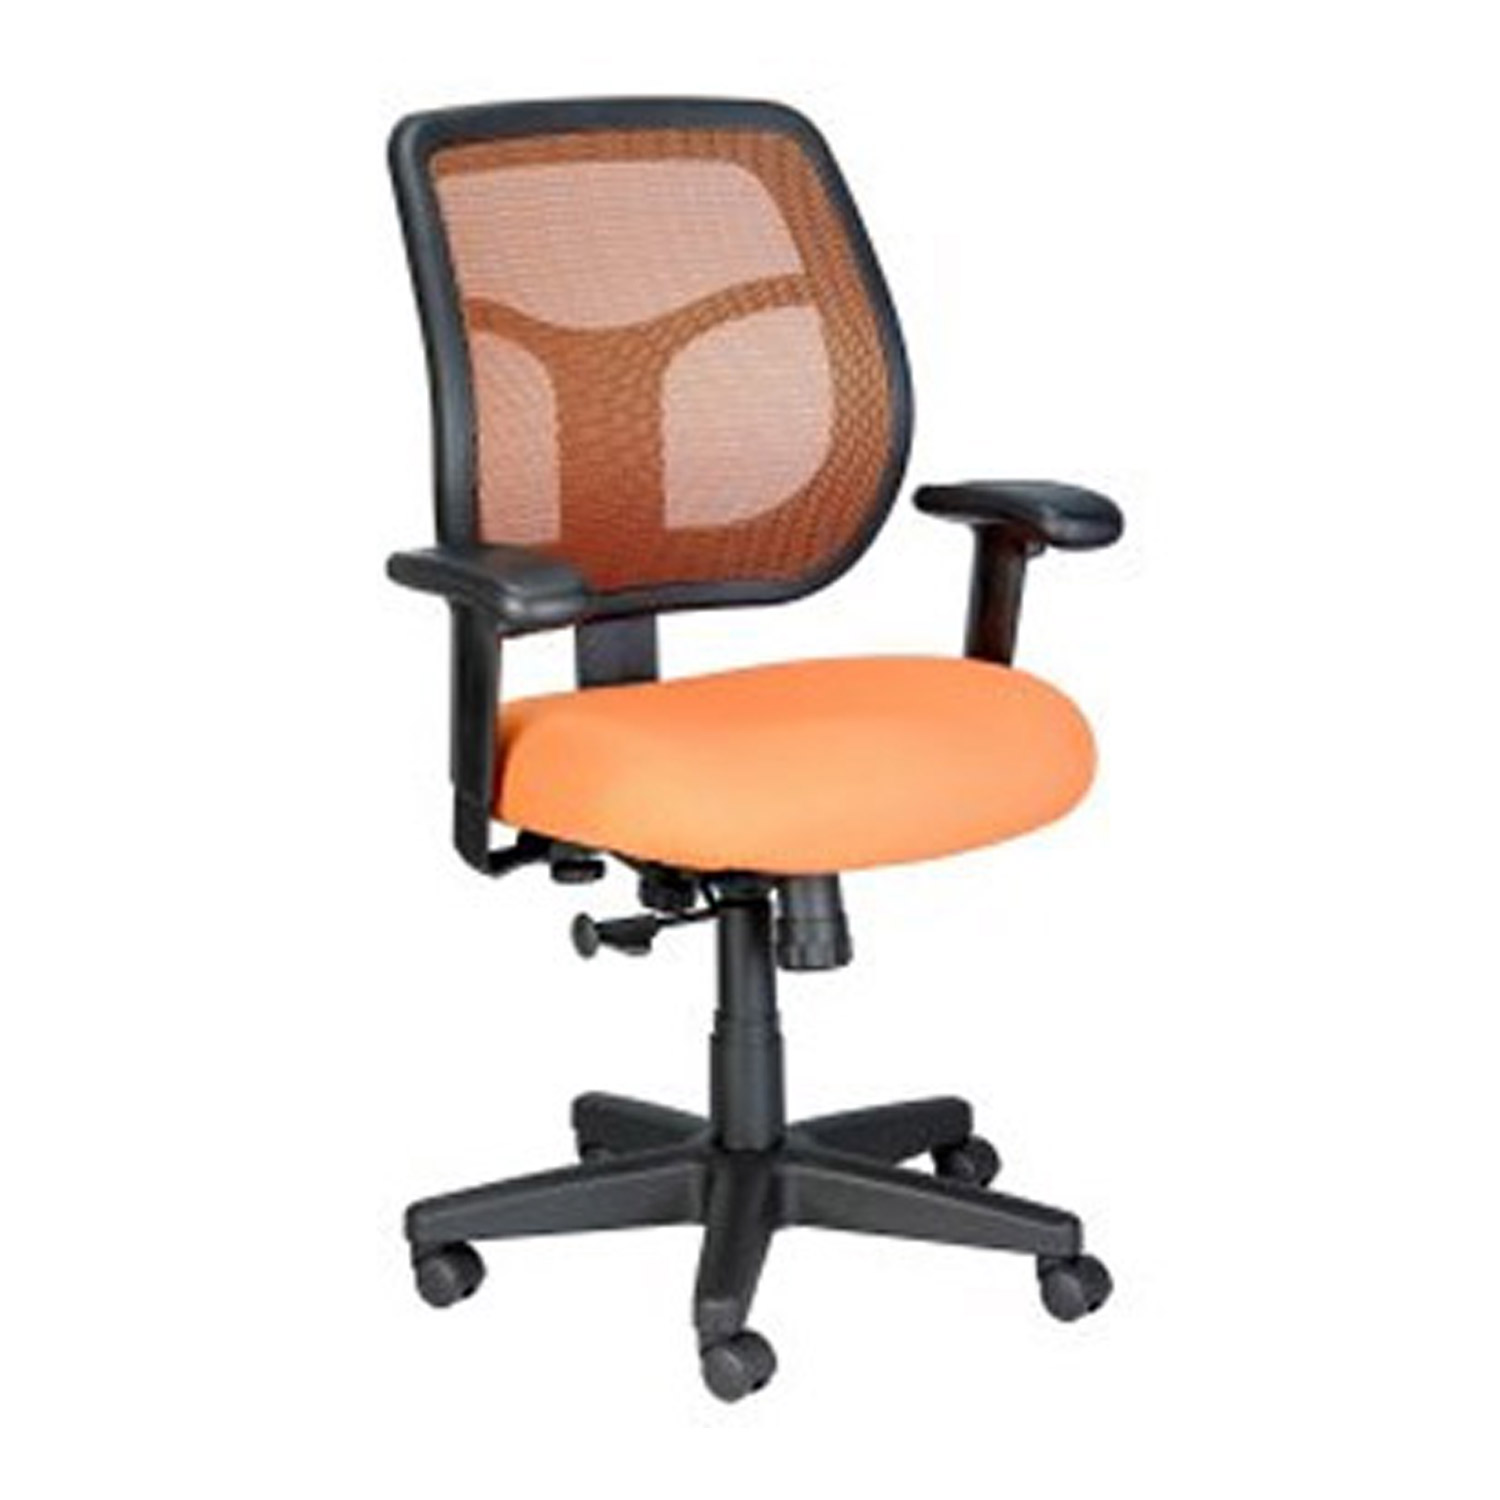 Ergonomic Computer Chair Ergonomic Computer Chairs Office Desk Chairs Office